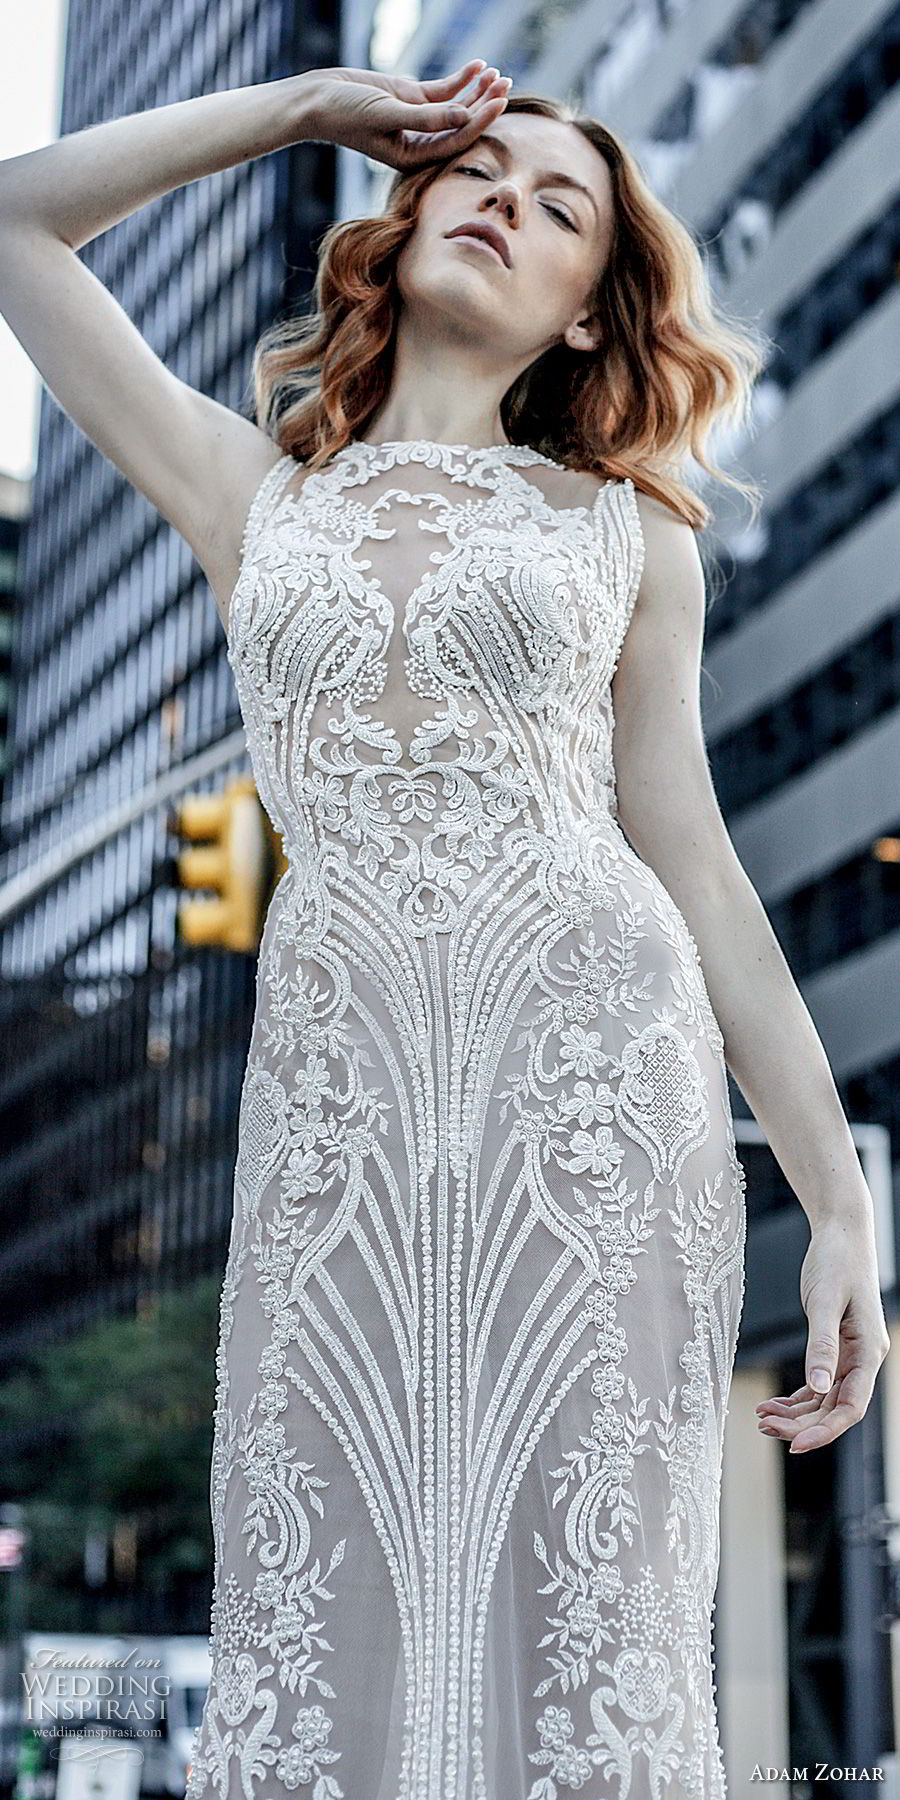 adam zohar 2017 bridal sleeveless jewel neck full embellishment elegant sheath wedding dress keyhole back sweep train (3) zv